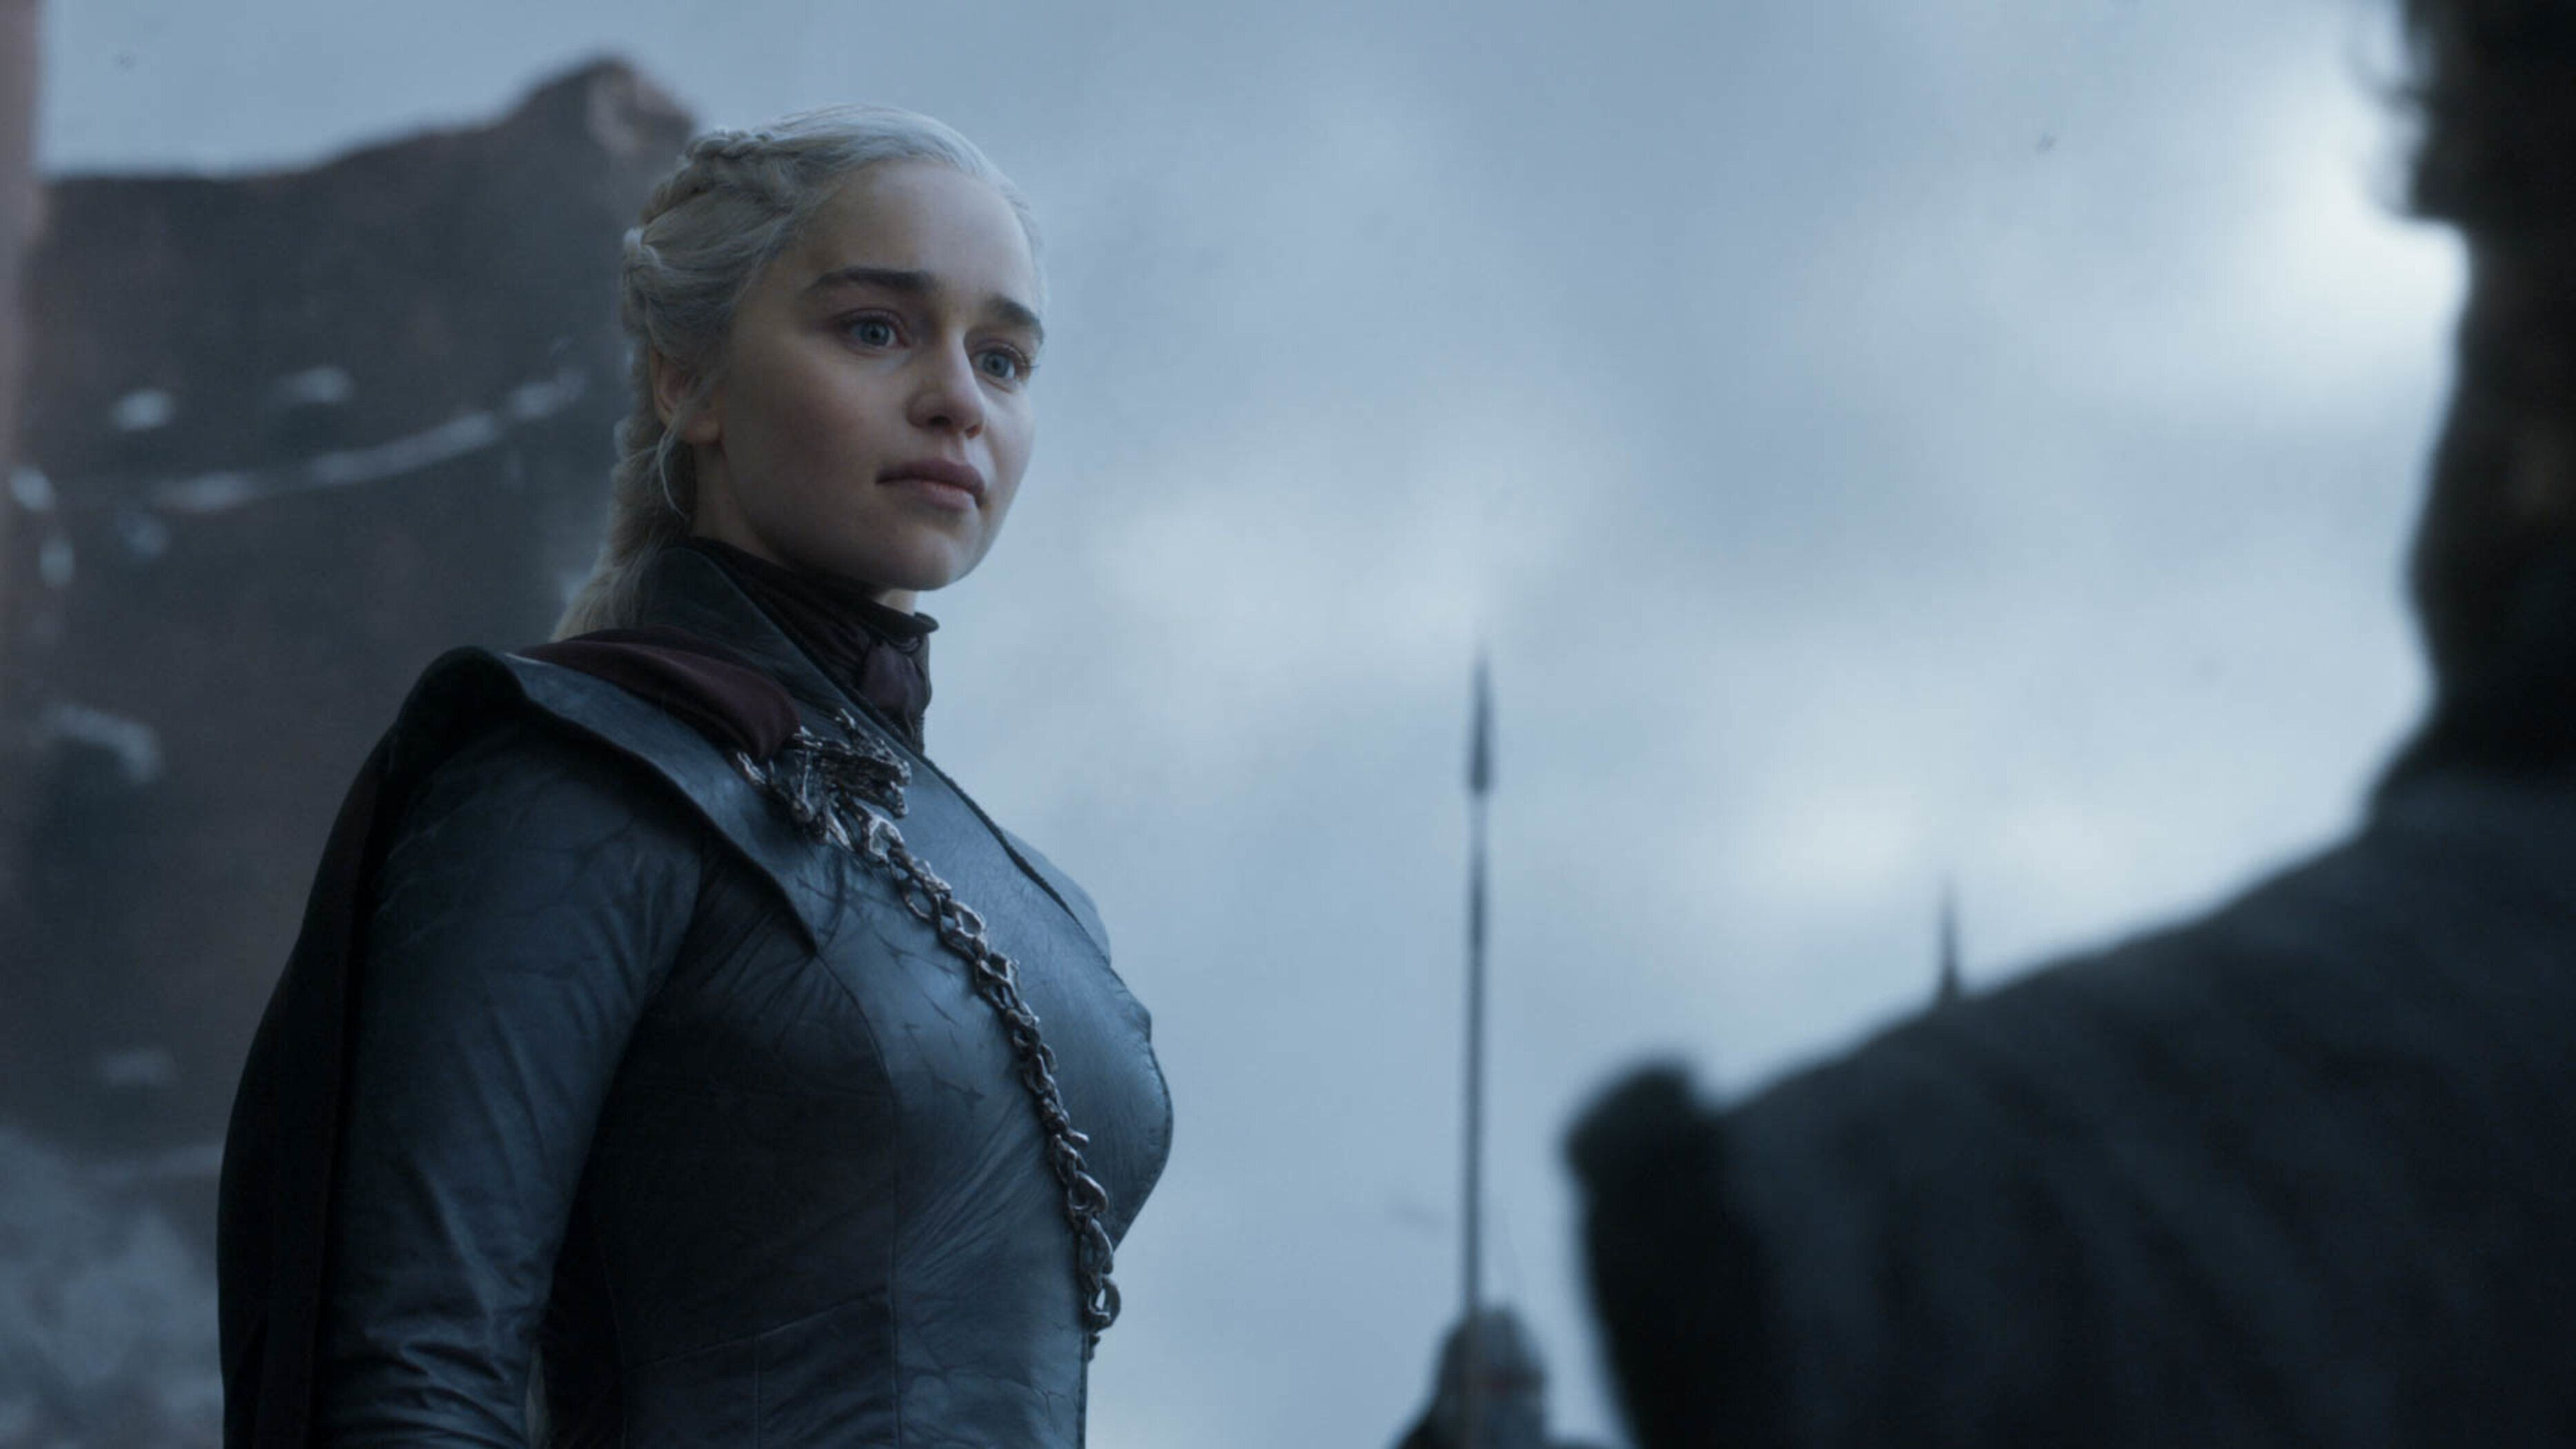 The Mother of, eh, Drogon.